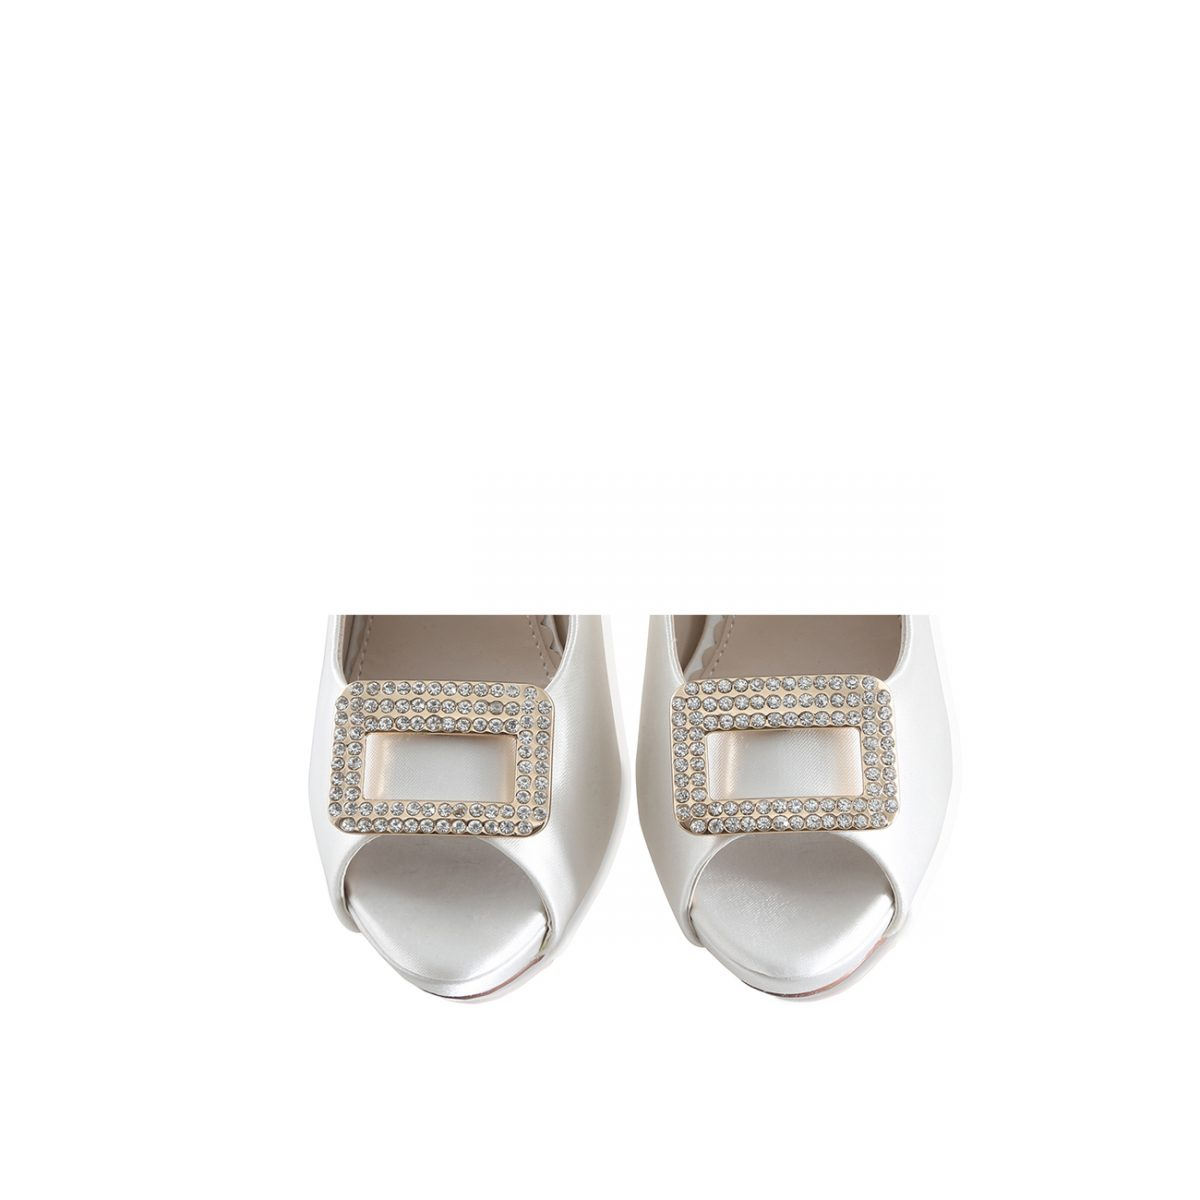 Perfect Bridal Date Shoe Trim - Gold